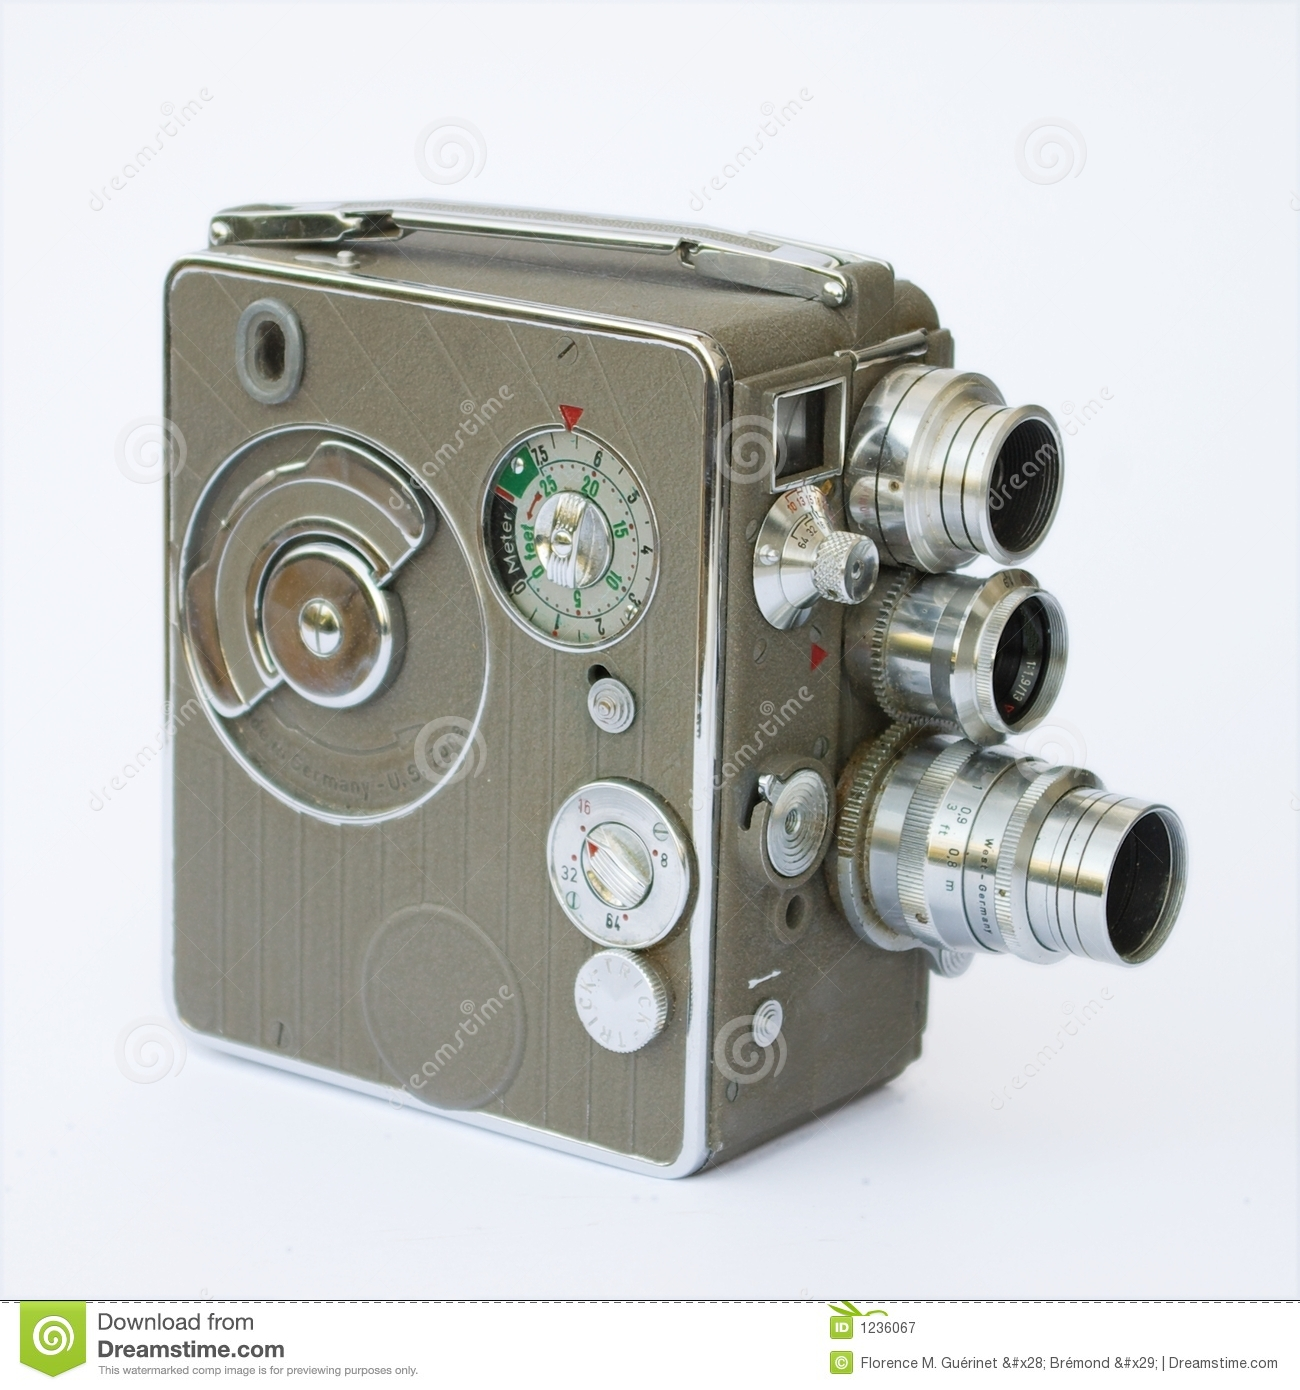 Old Film Camera Royalty Free Stock Photography - Image: 1236067